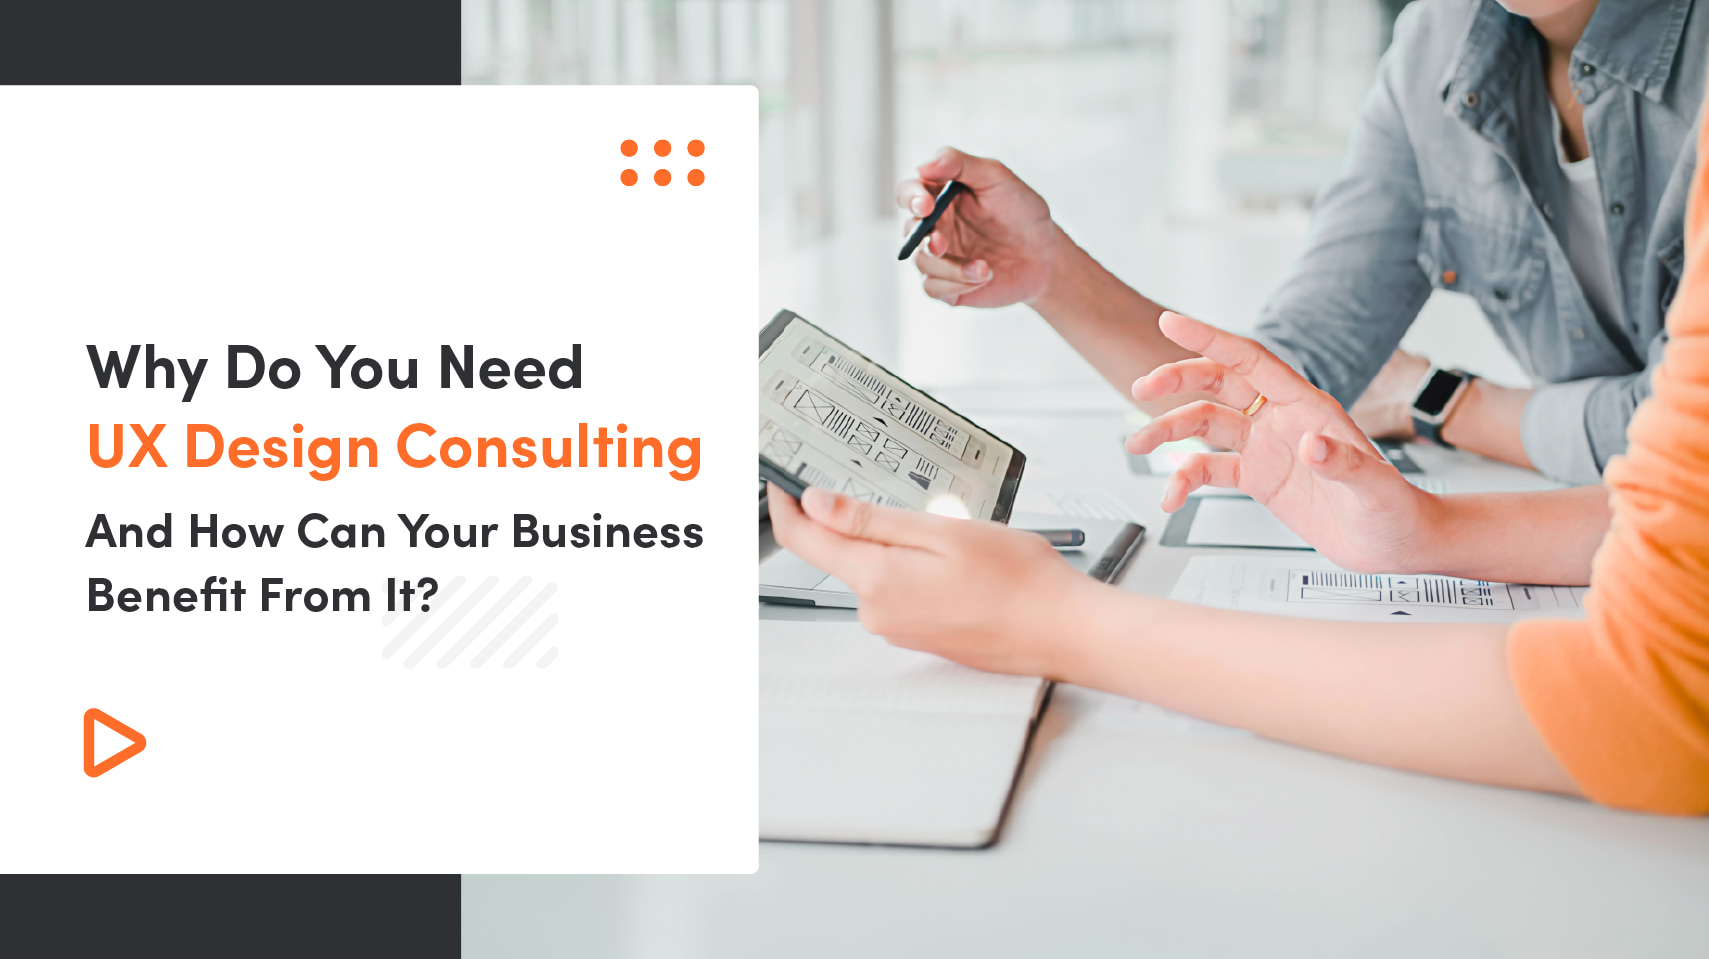 Why Do You Need UX Design Consulting And How Can Your Business Benefit From It?